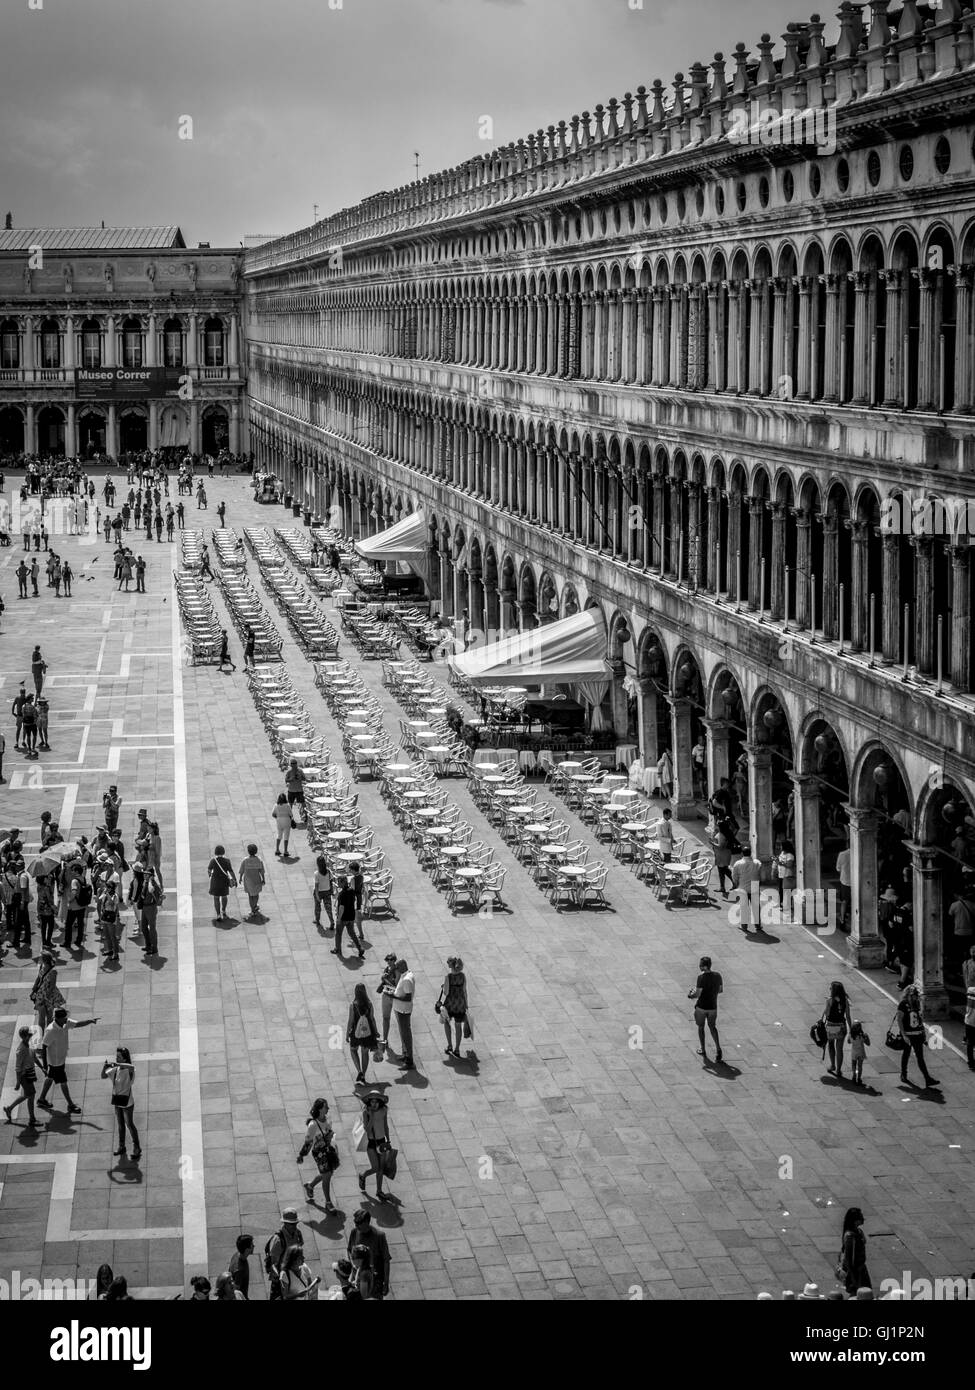 Aerial view of St Mark's square with people sitting at the cafe tables and chairs. Venice, Italy. - Stock Image